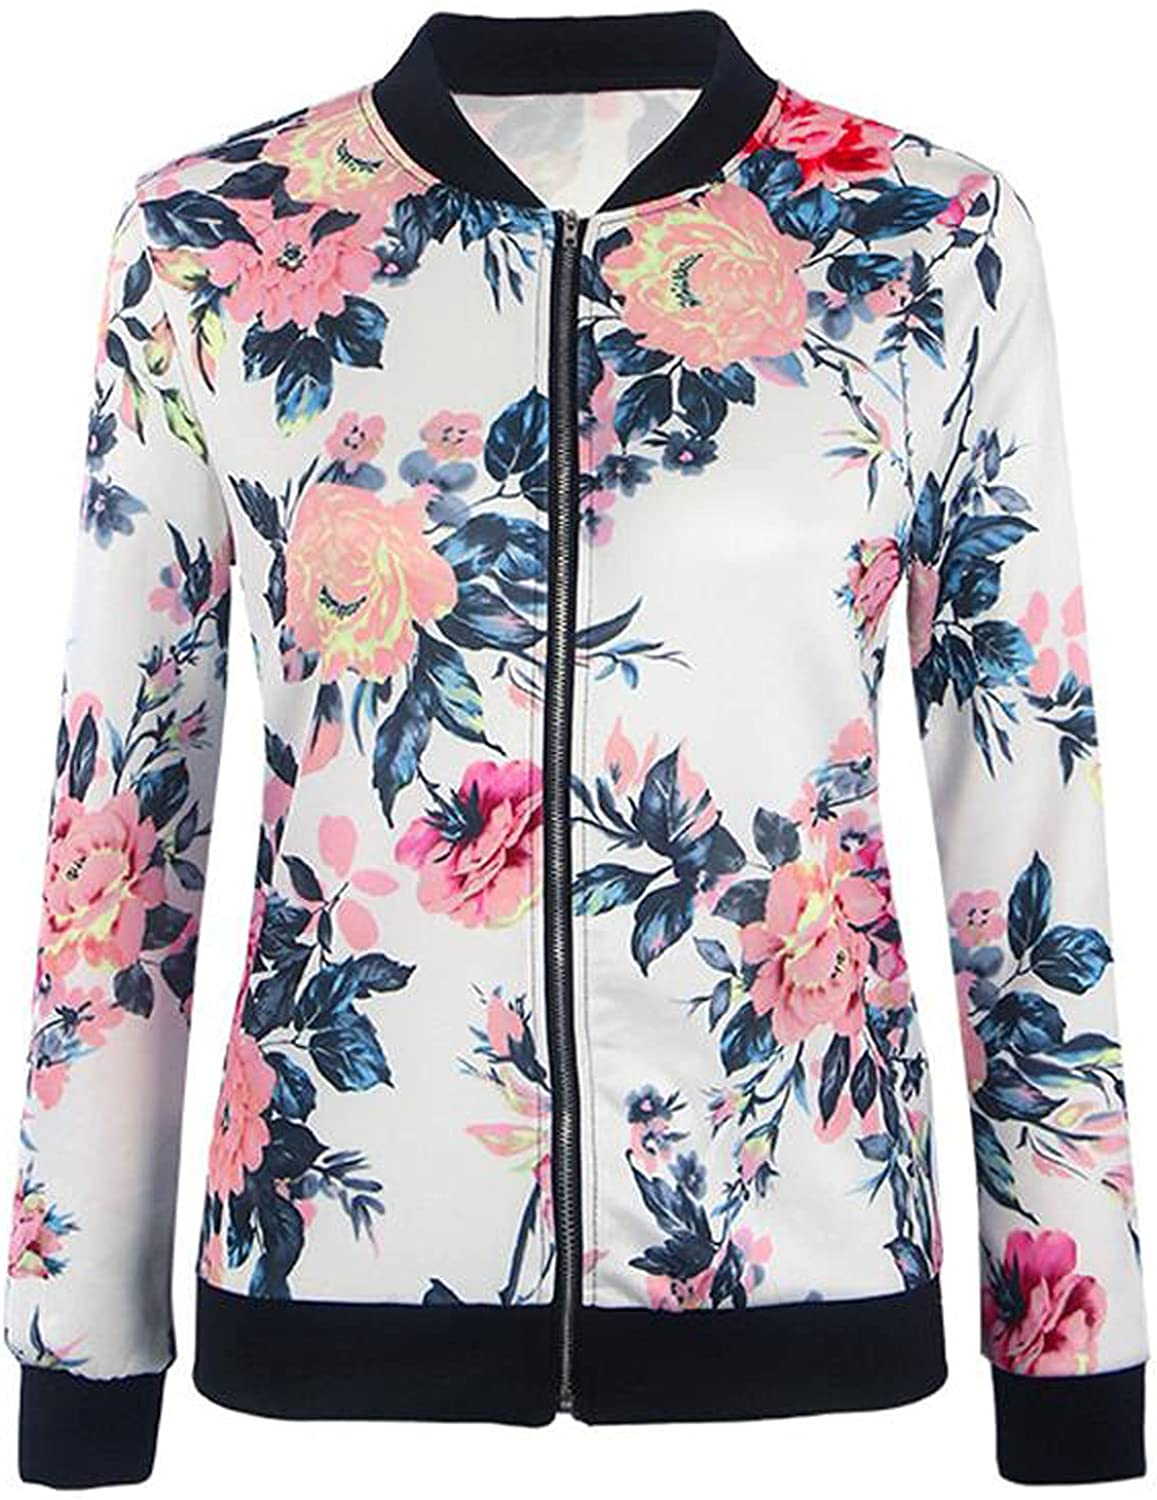 VonVonCo Dressy Tops for Women Vintage Long Sleeve Floral Printing Zipper Up Jacket Casual Tops Coat Outwear